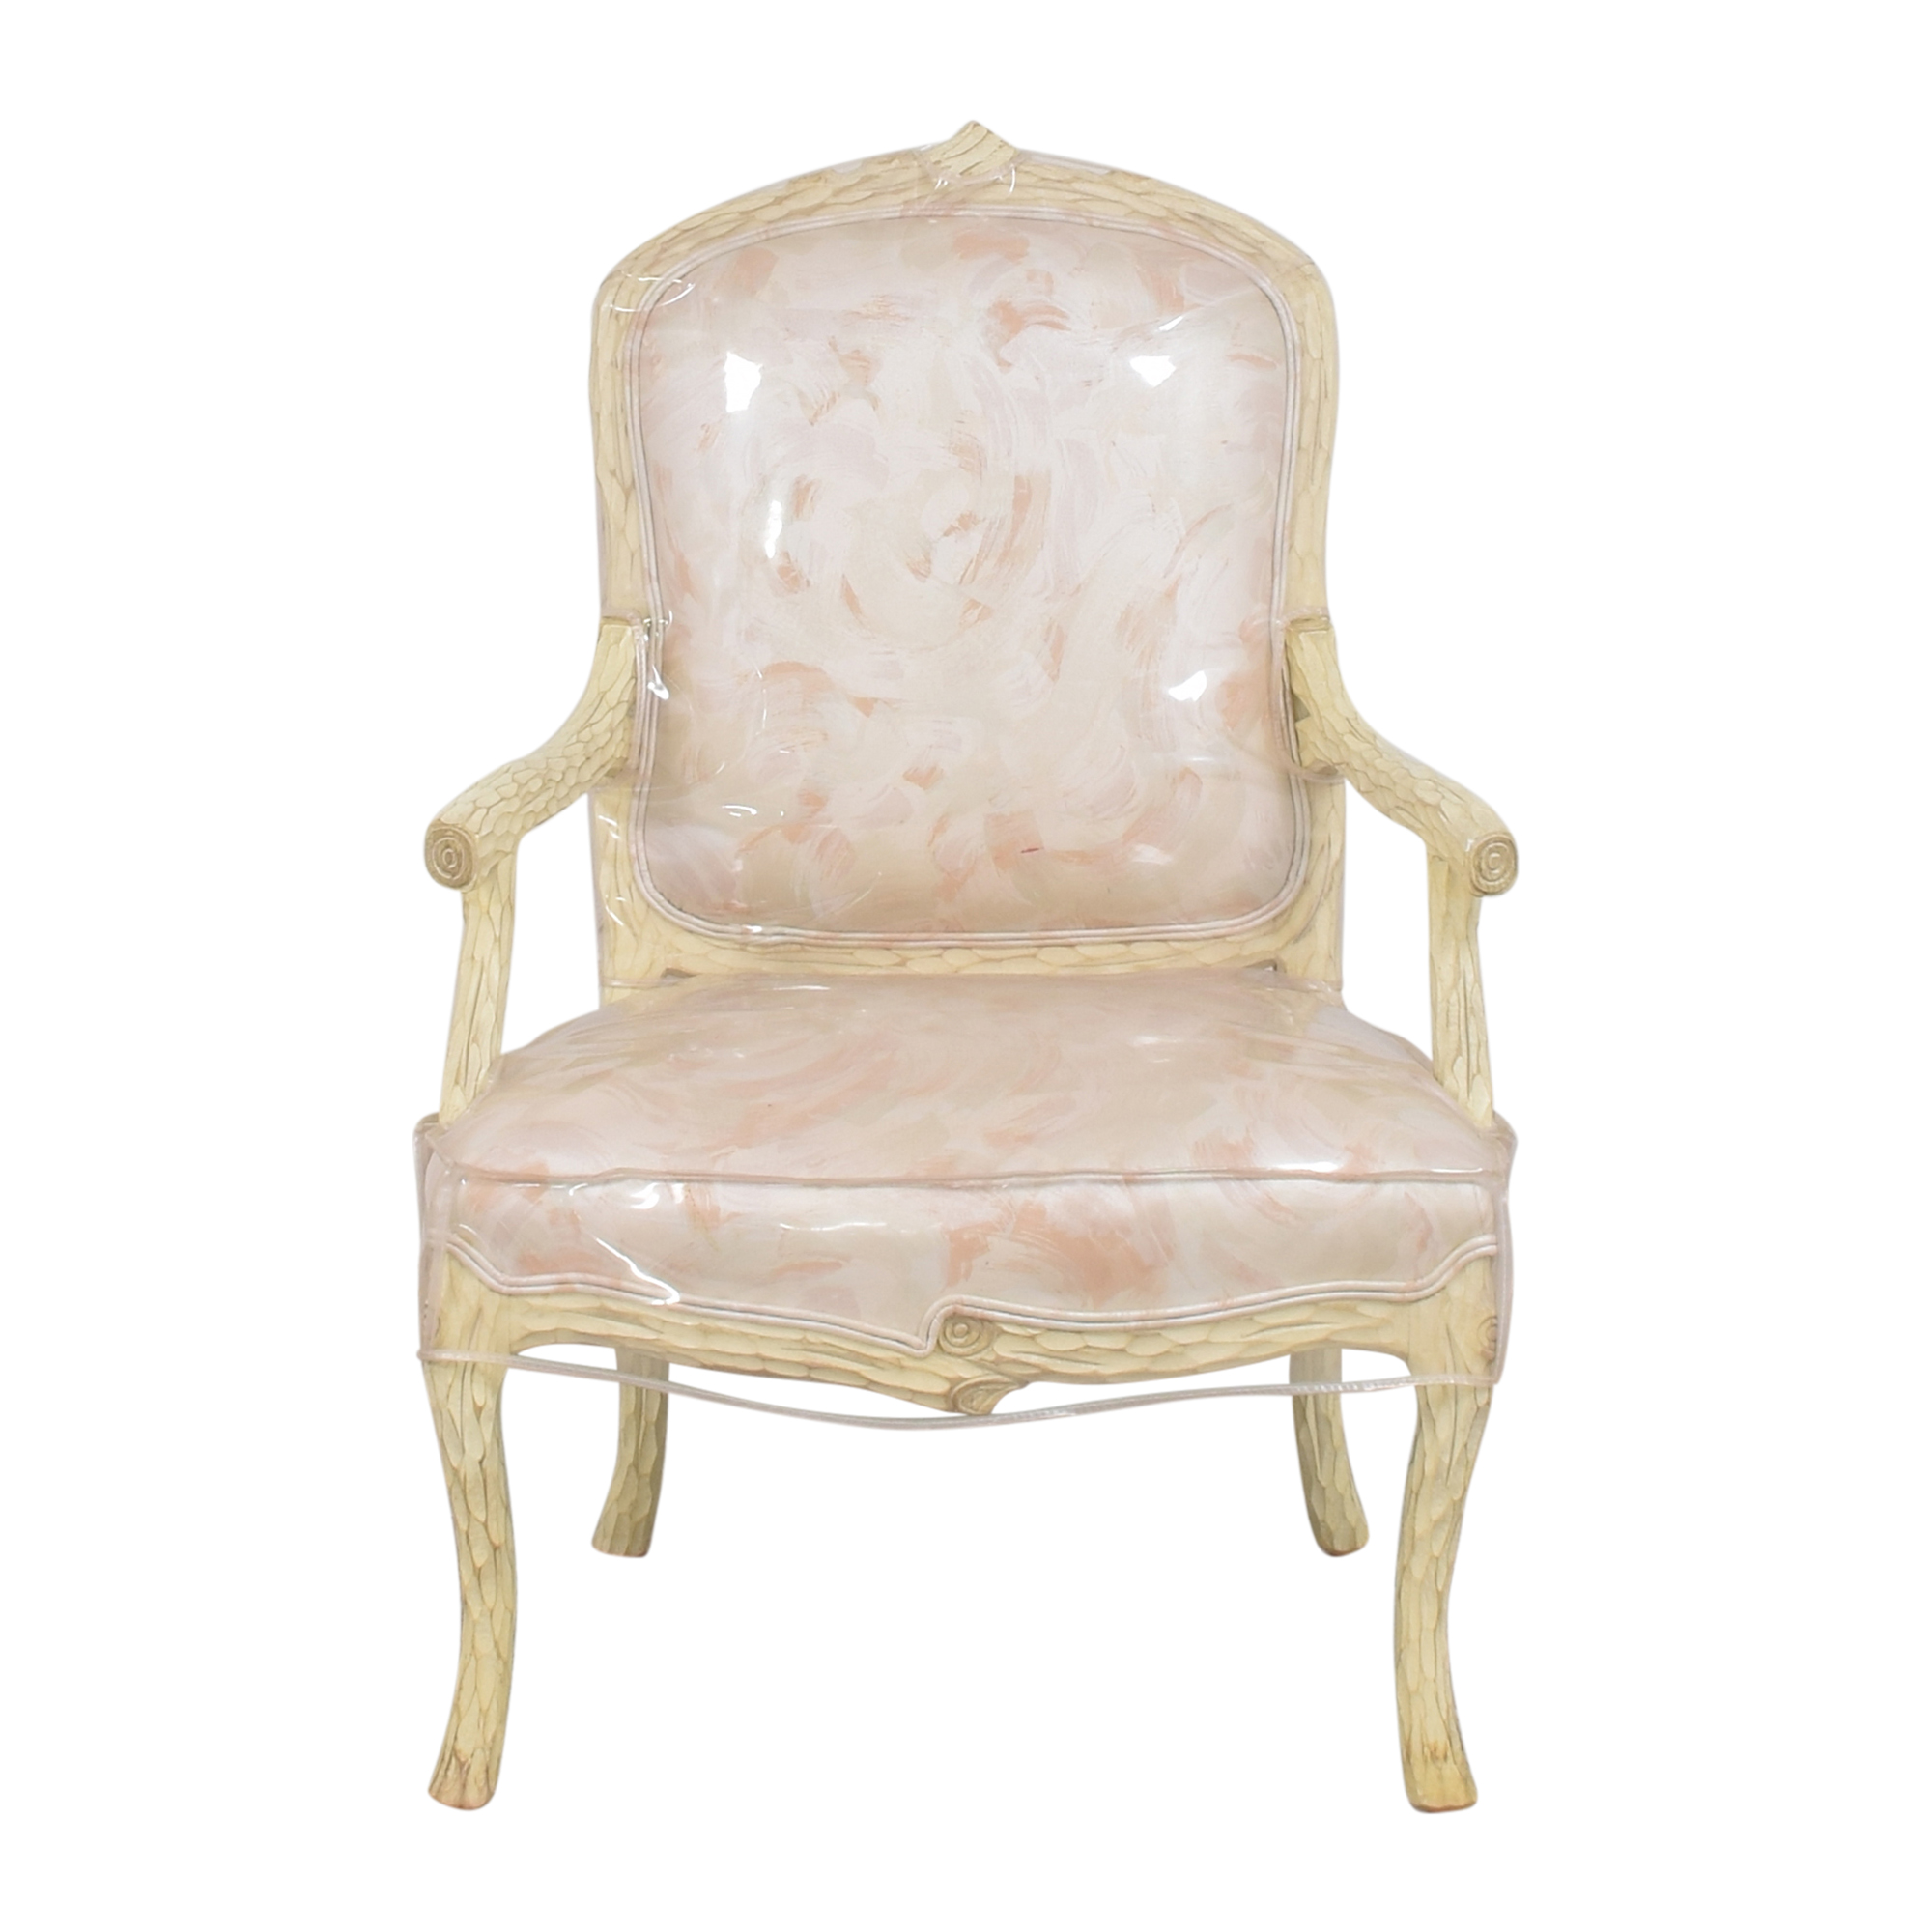 French Provincial-Style Arm Chair Accent Chairs